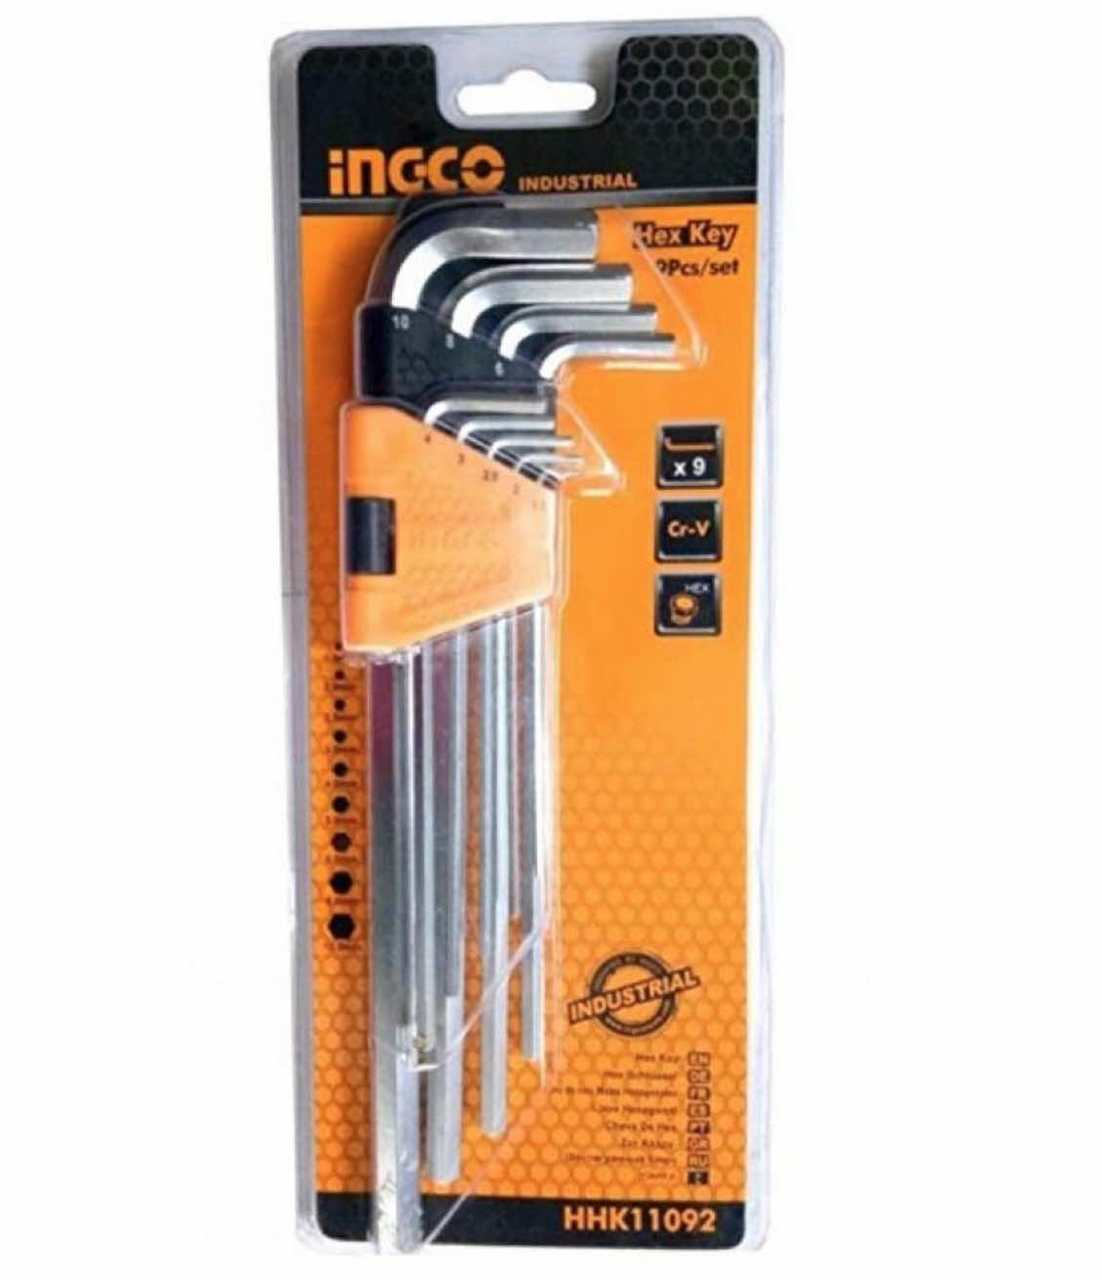 INGCO 9 Pcs Hex Key Set ( L Shape Key )